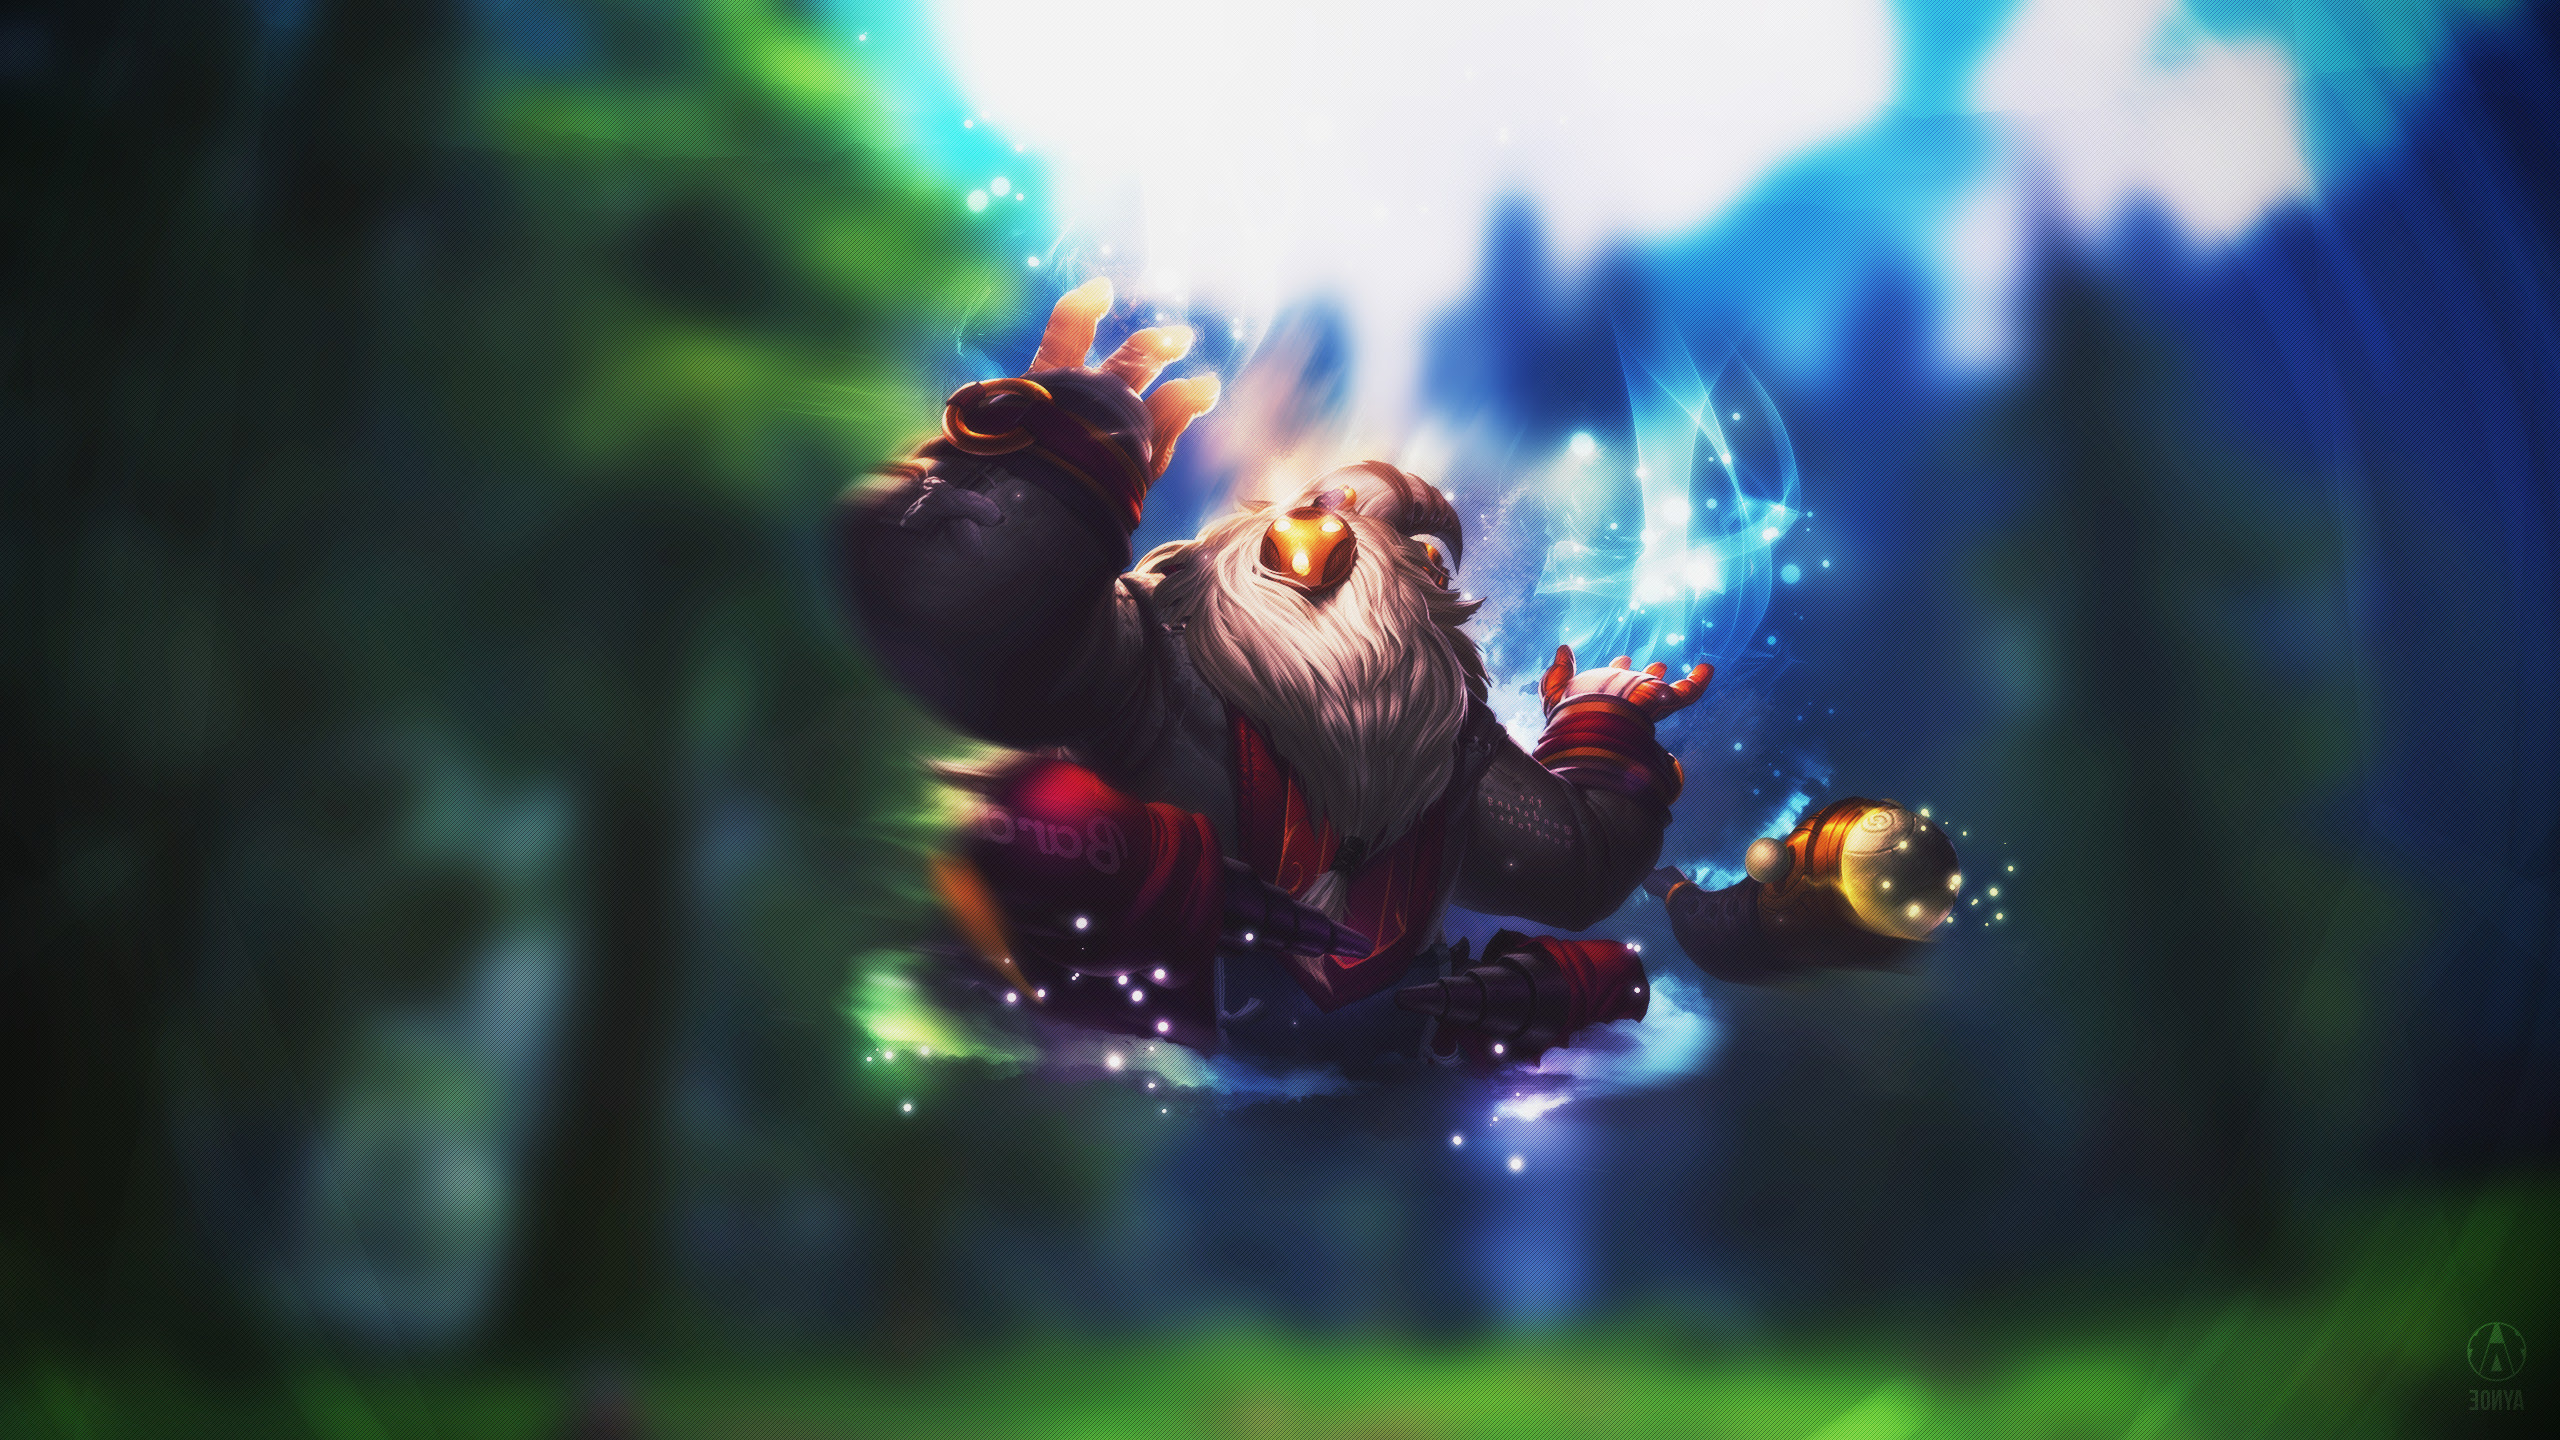 League Of Legends Support Bard Wallpapers Hd Desktop And